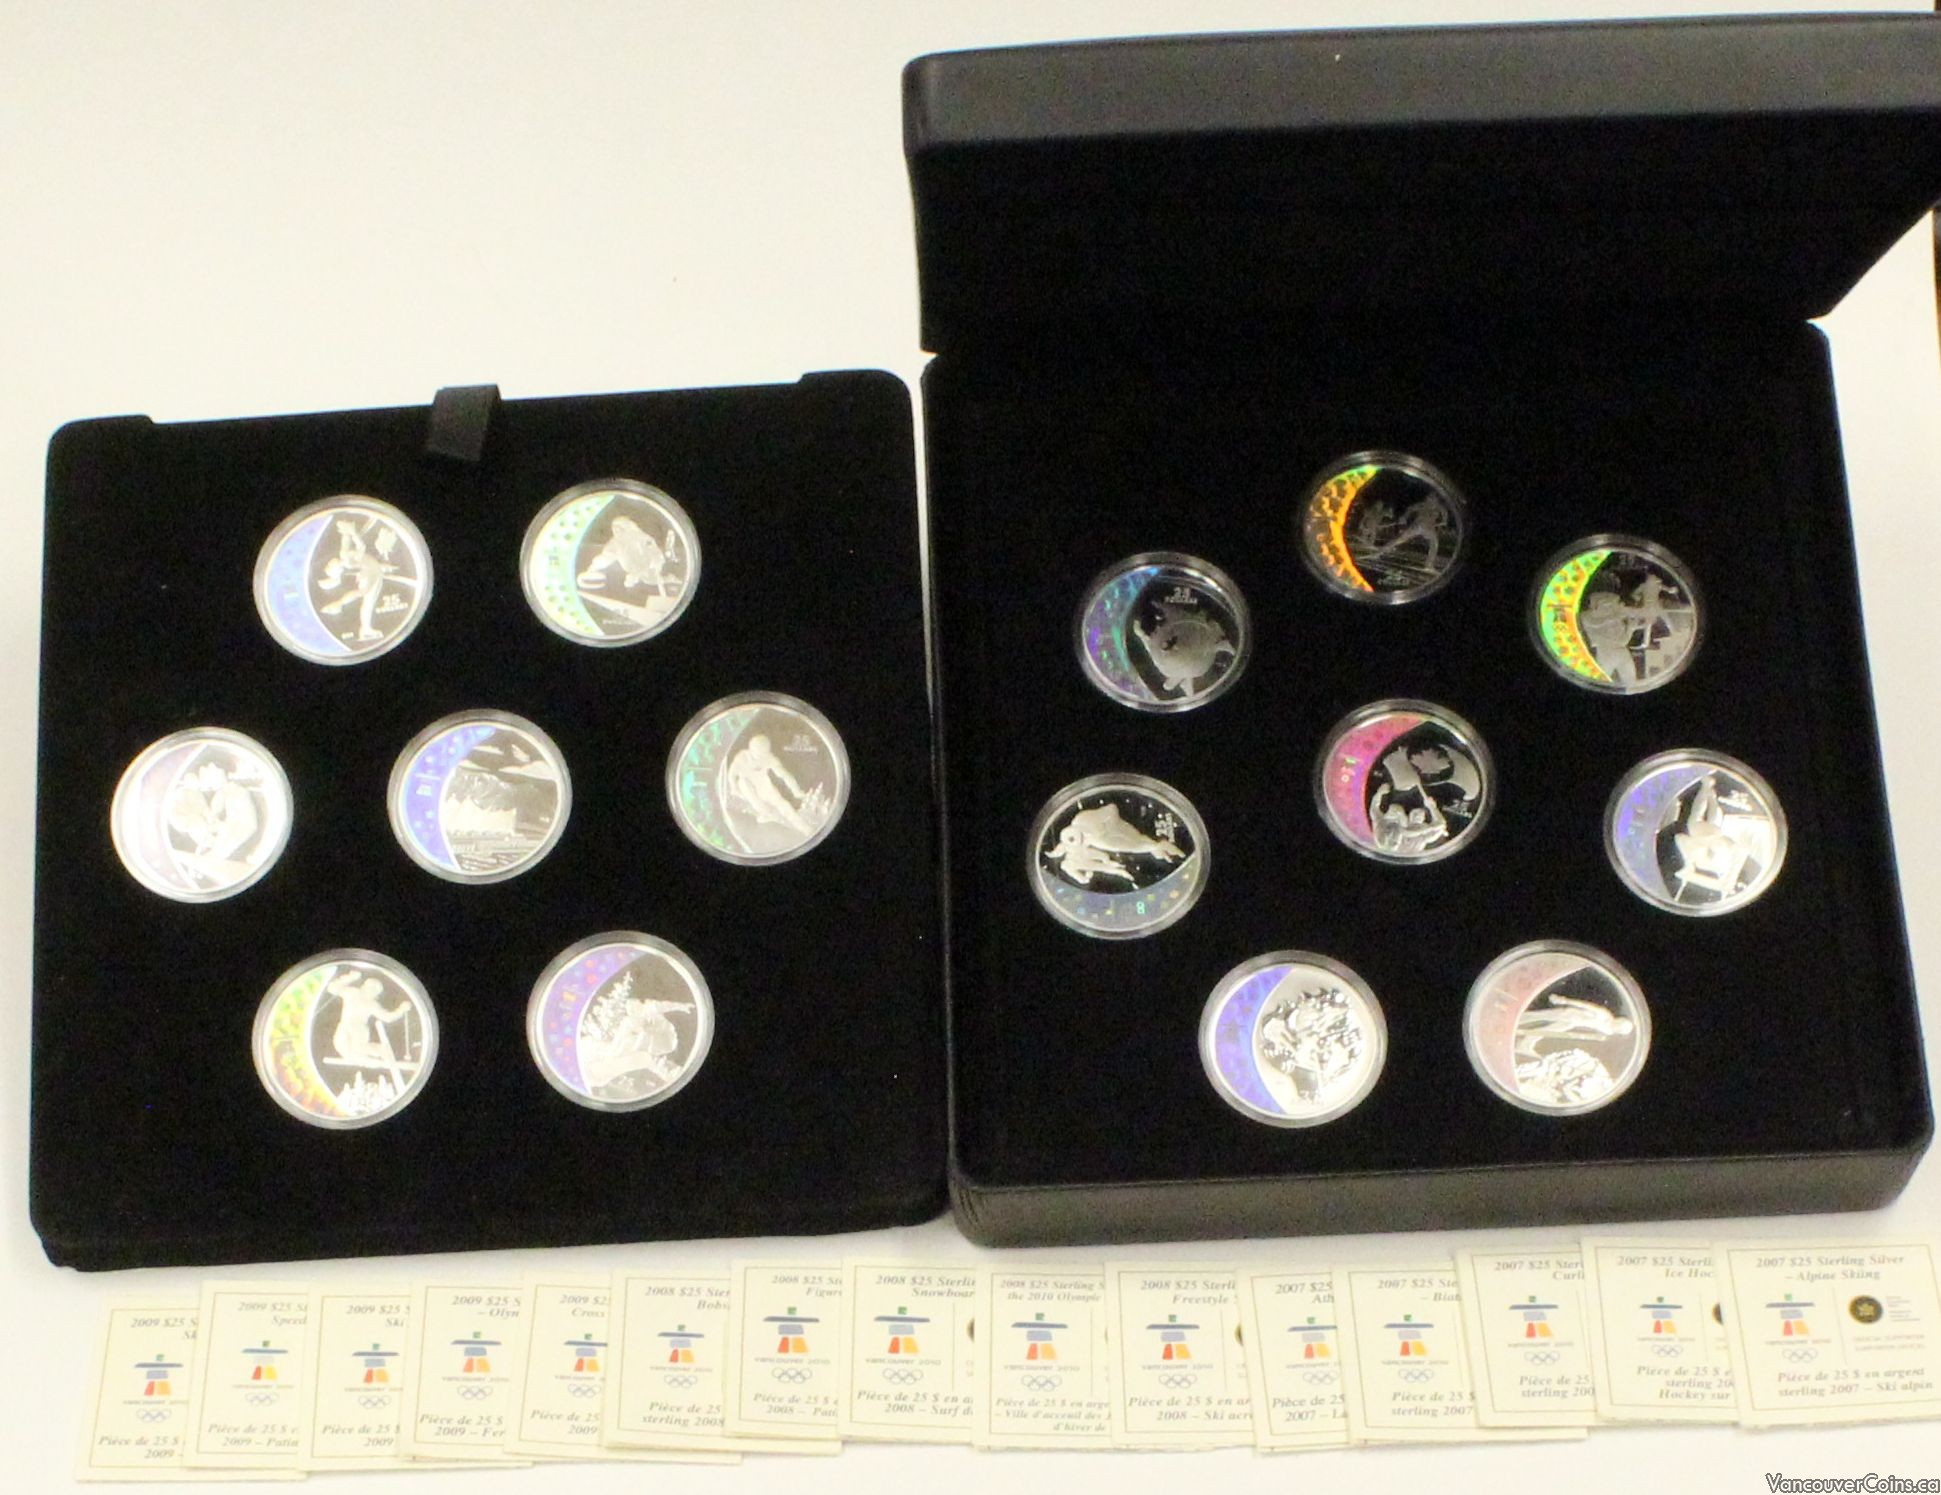 1988 Calgary Olympic $20 Proof Silver 2 Coin Set Ski Jumping Bobsled Orig Box